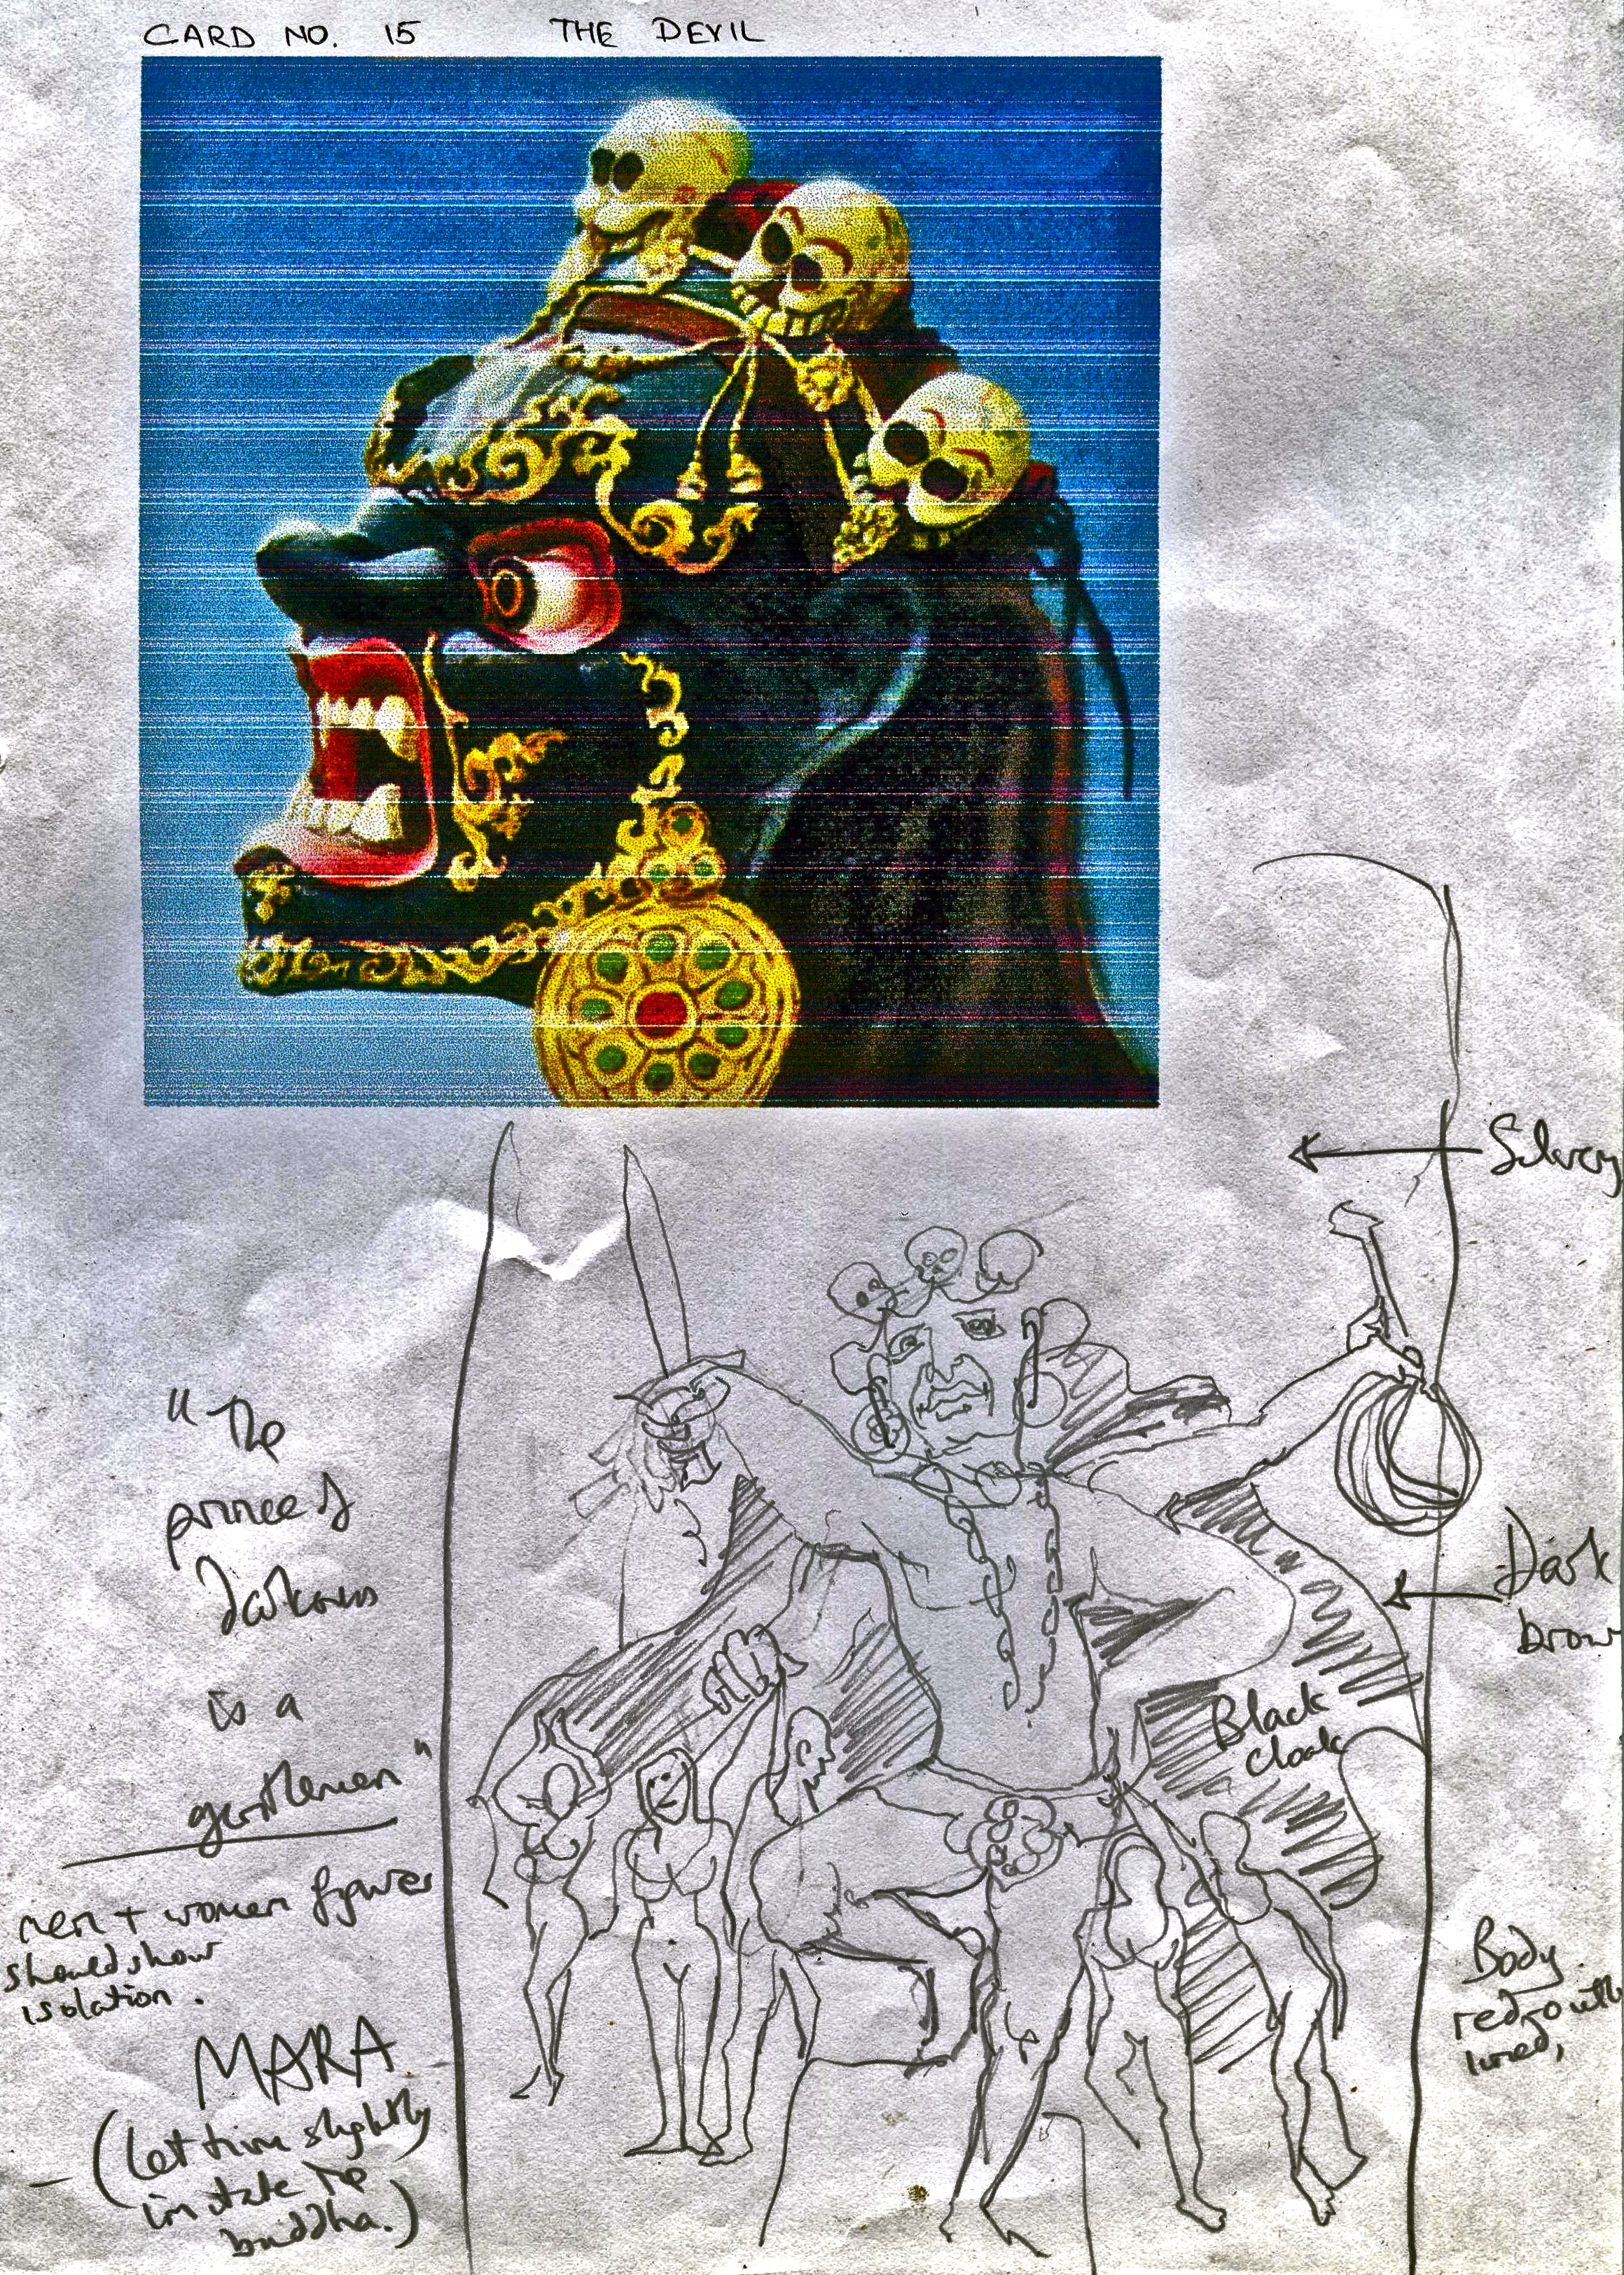 The Sacred India Tarot: Creation Of The Devil Card